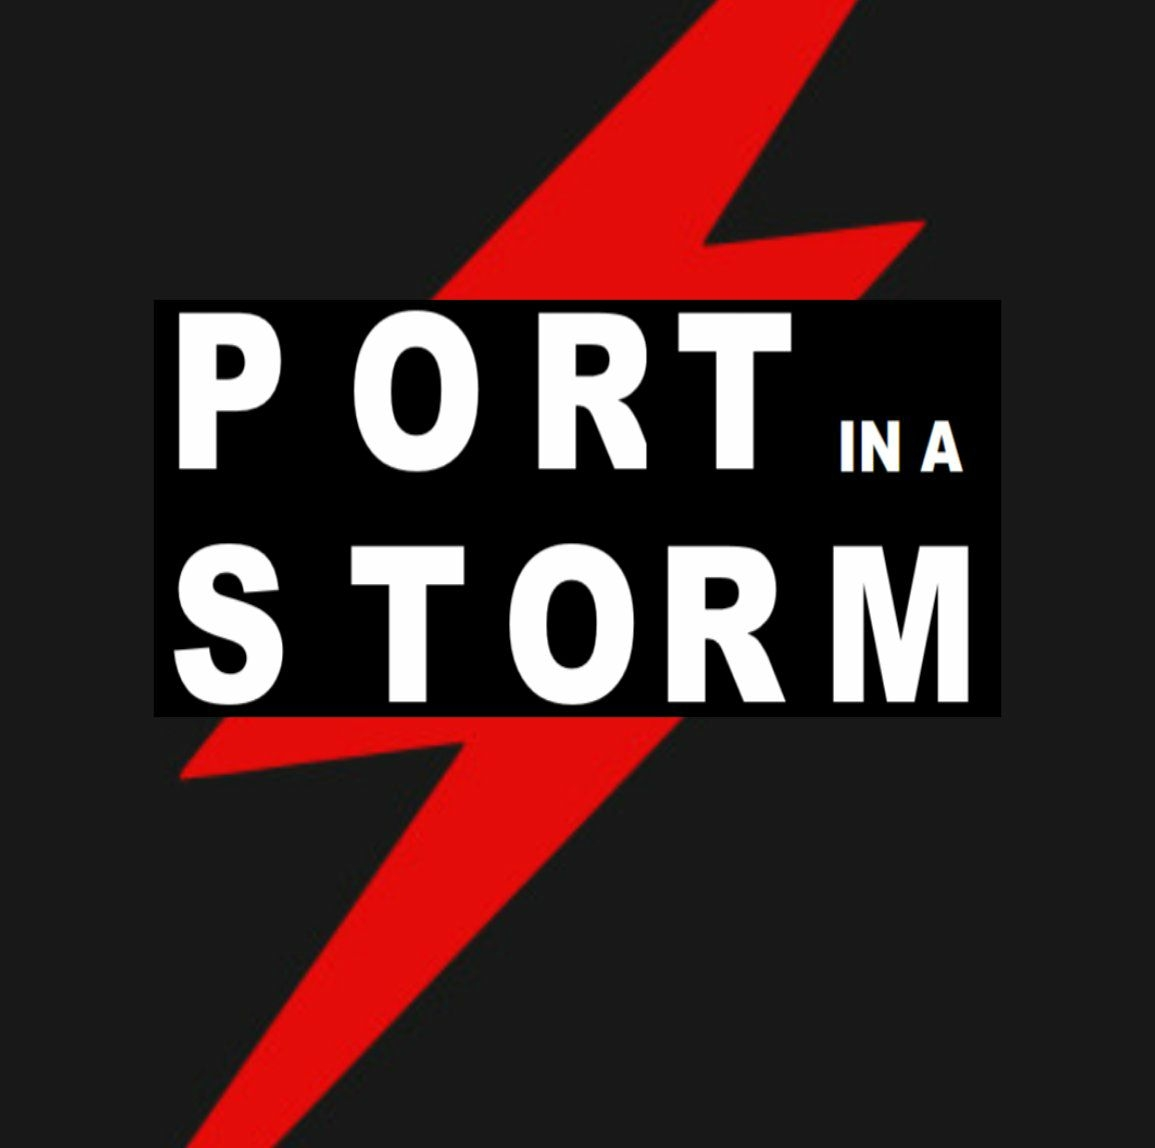 Port in a storm.